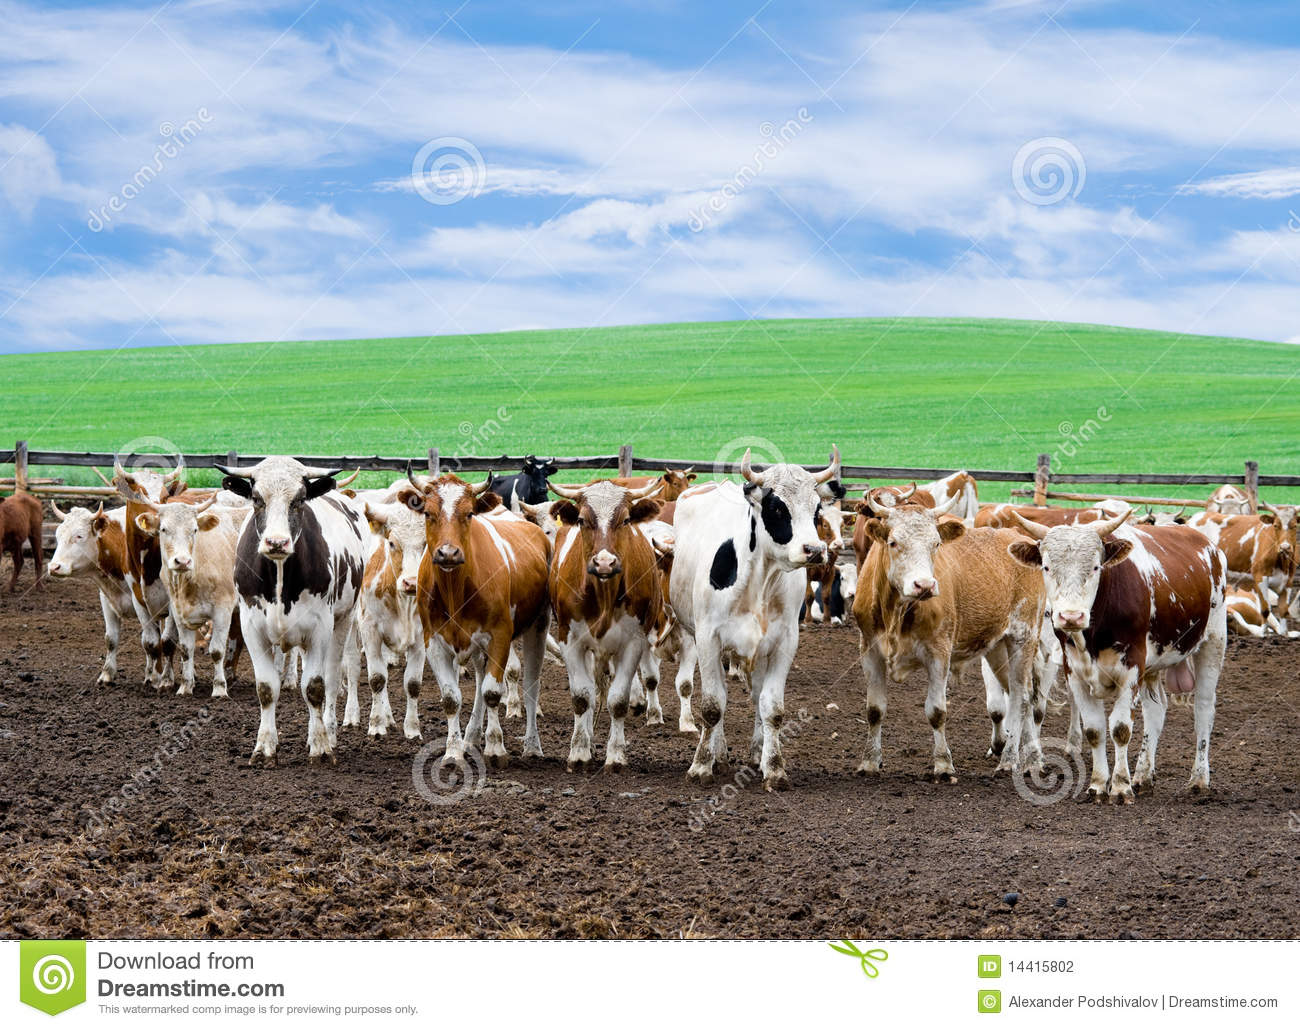 Herd of beef cattle at farm